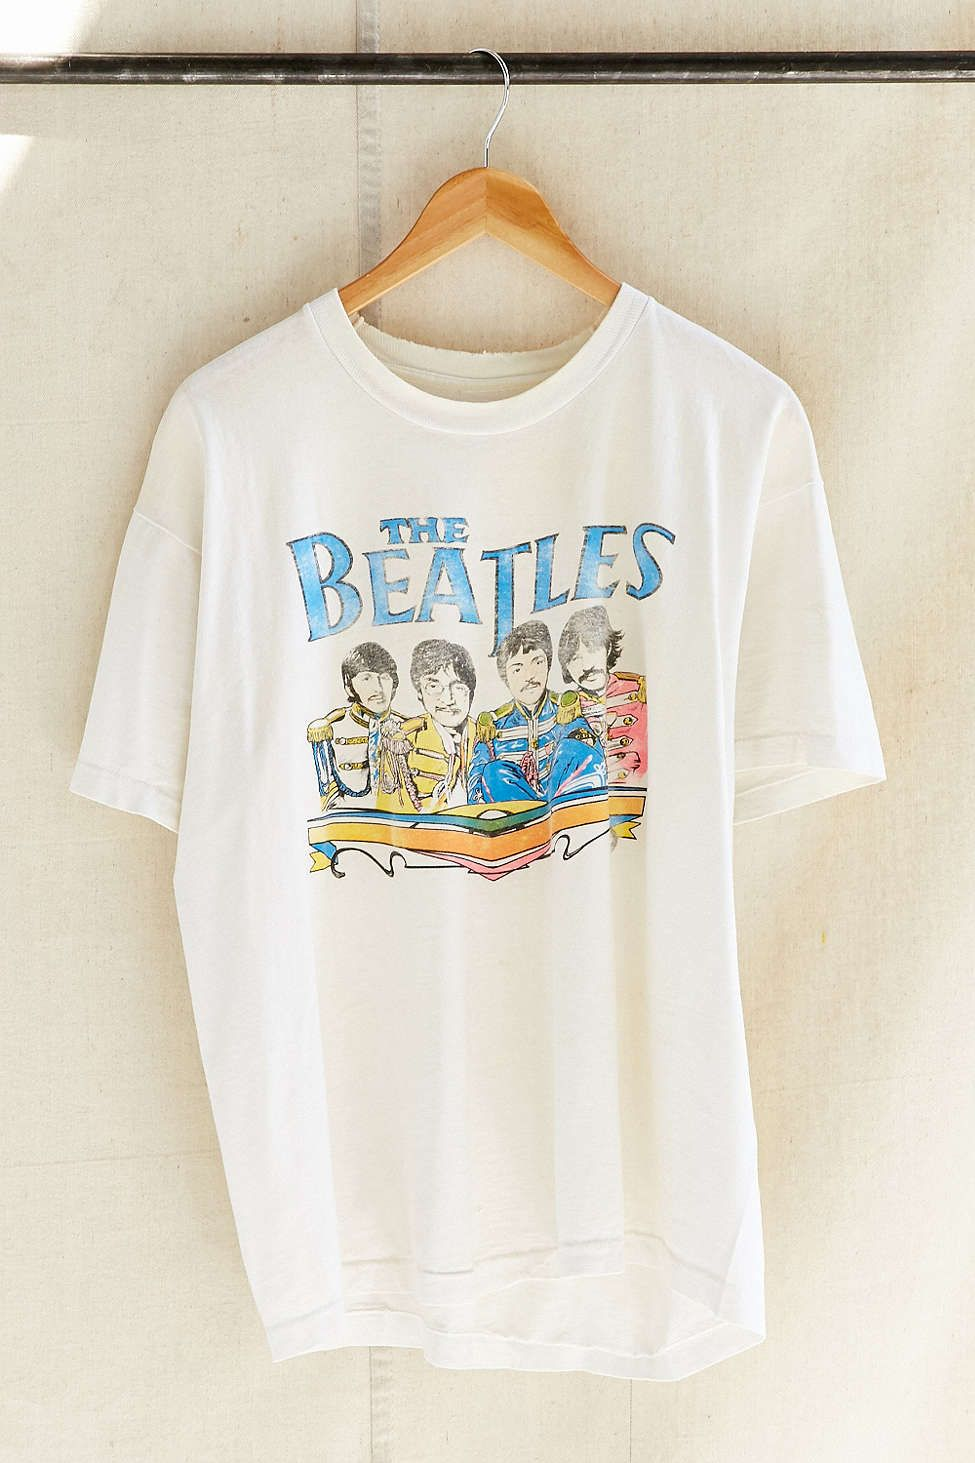 a8762aa24 Vintage The Beatles Band Tee - Urban Outfitters | Vintage Clothing ...